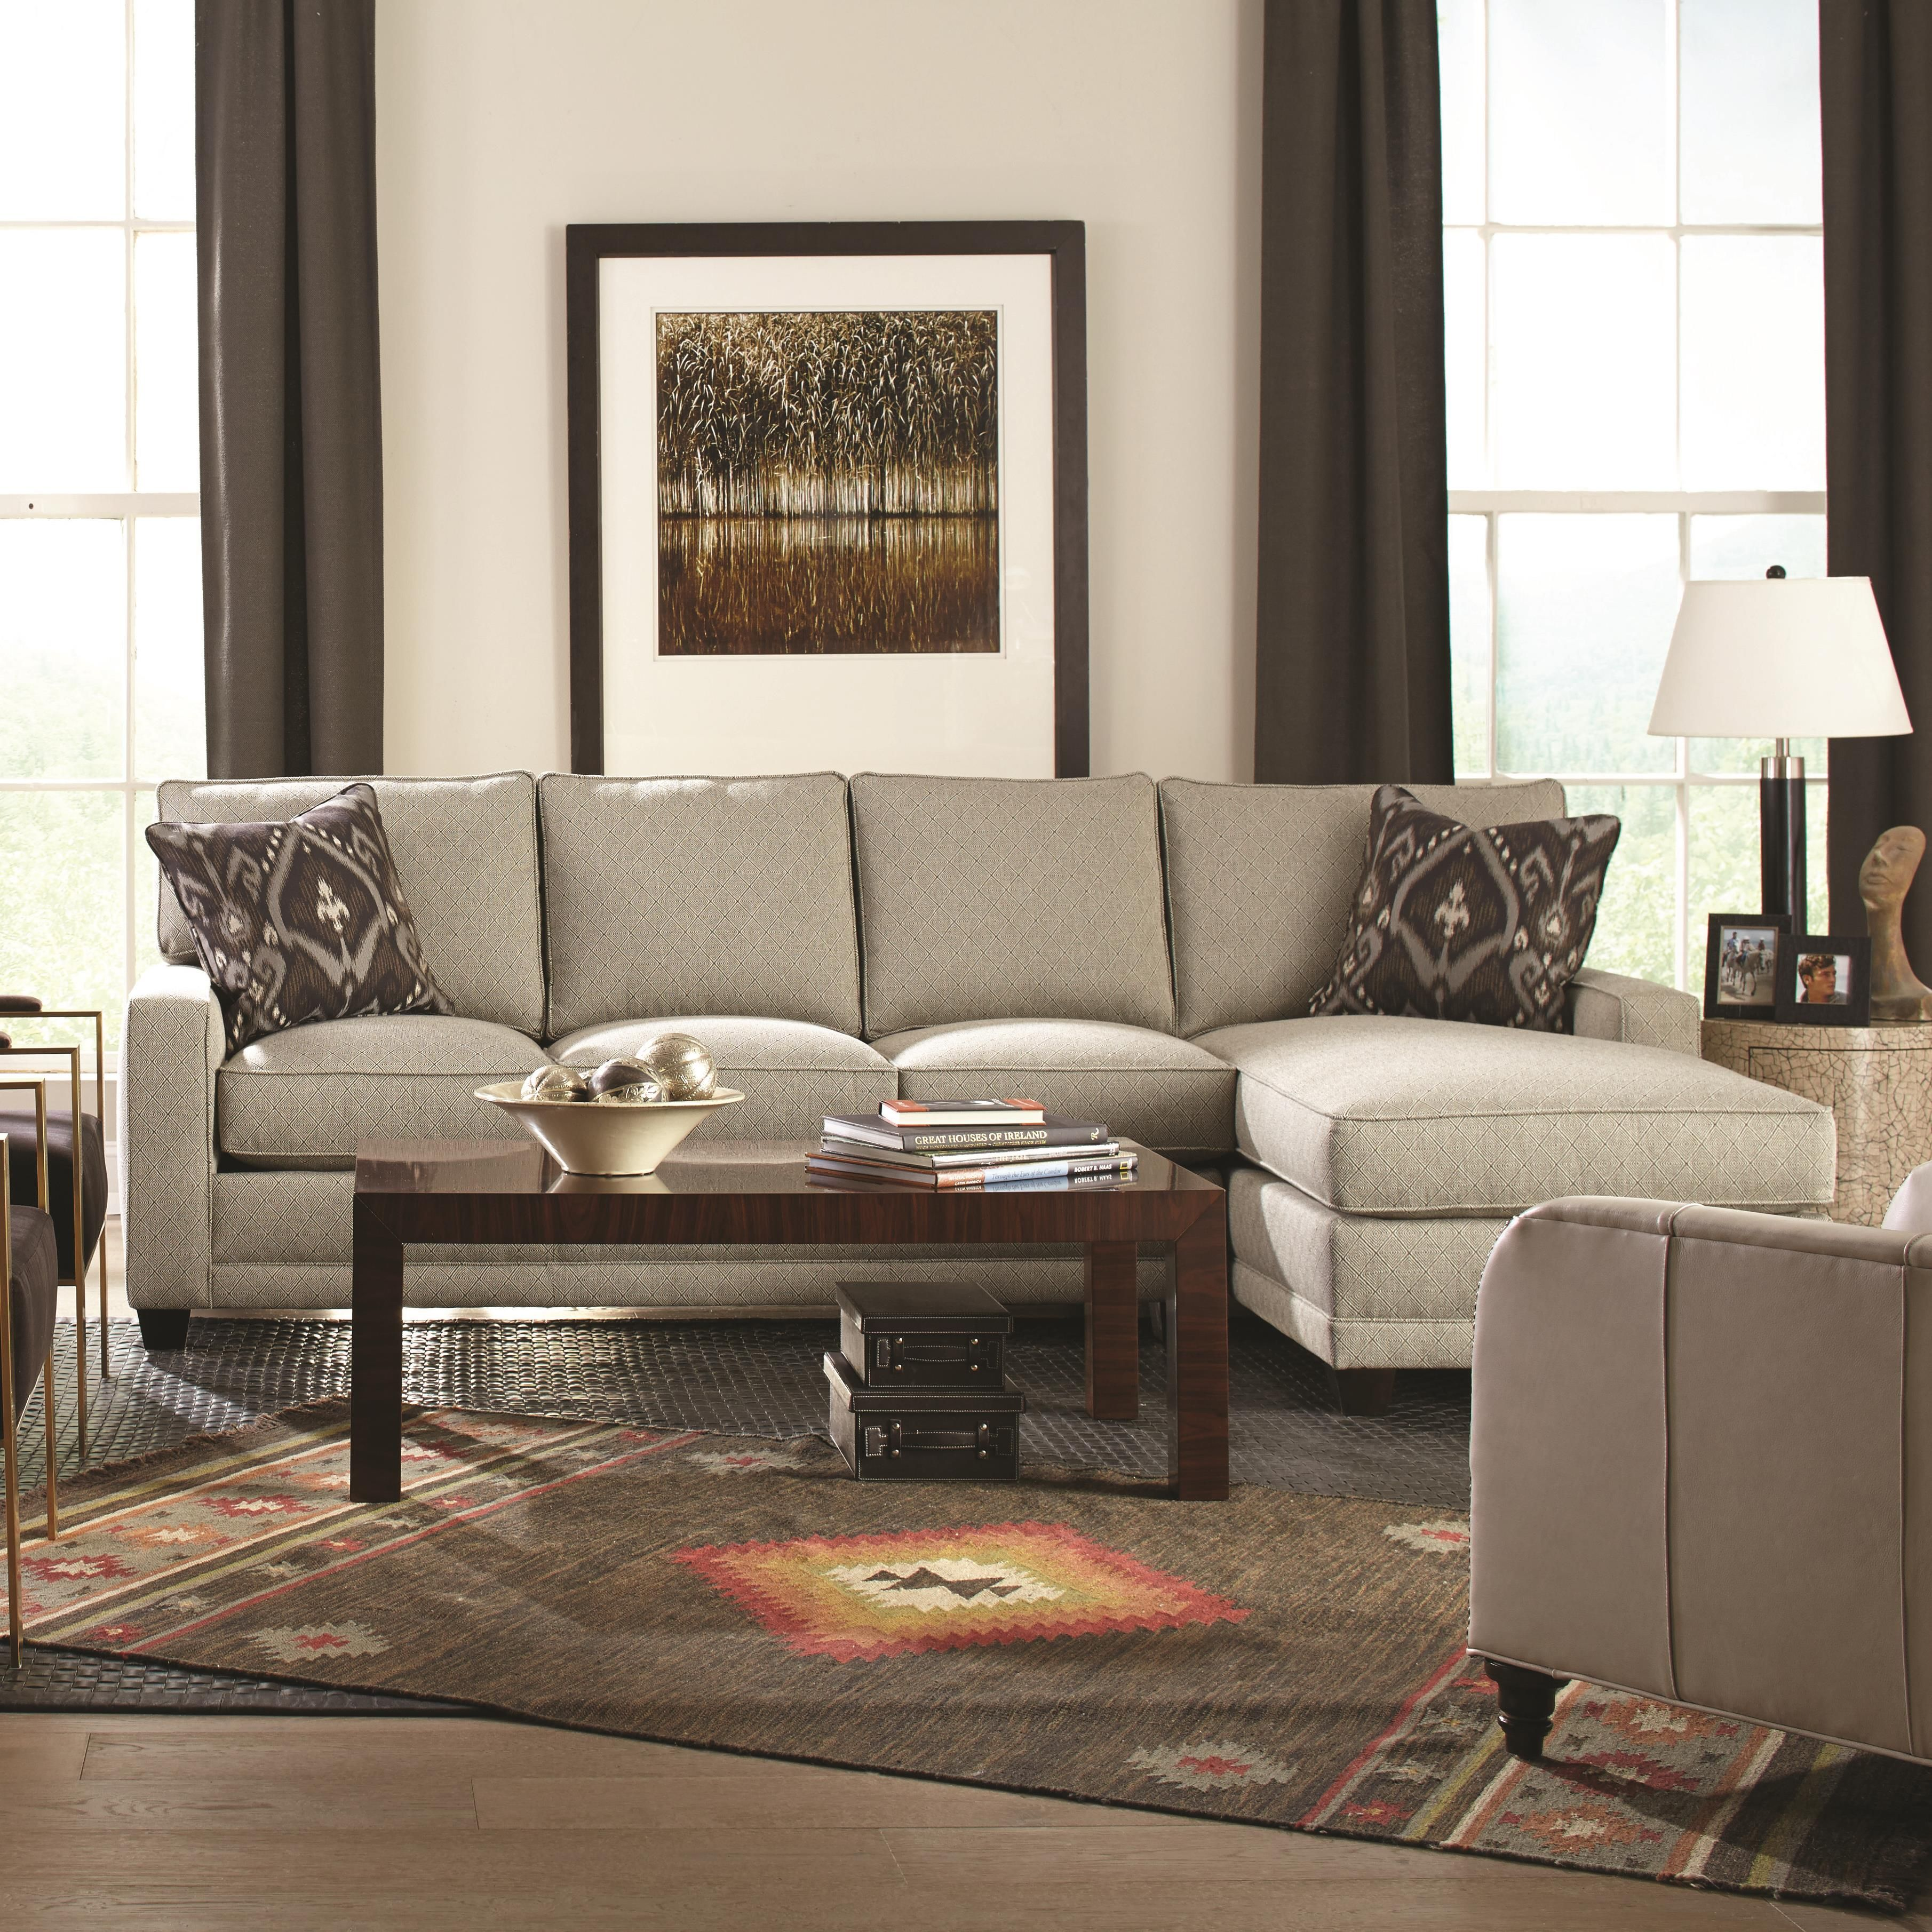 woptions gray modena image sectional mn p by options in sofas w casamode sofa fabric